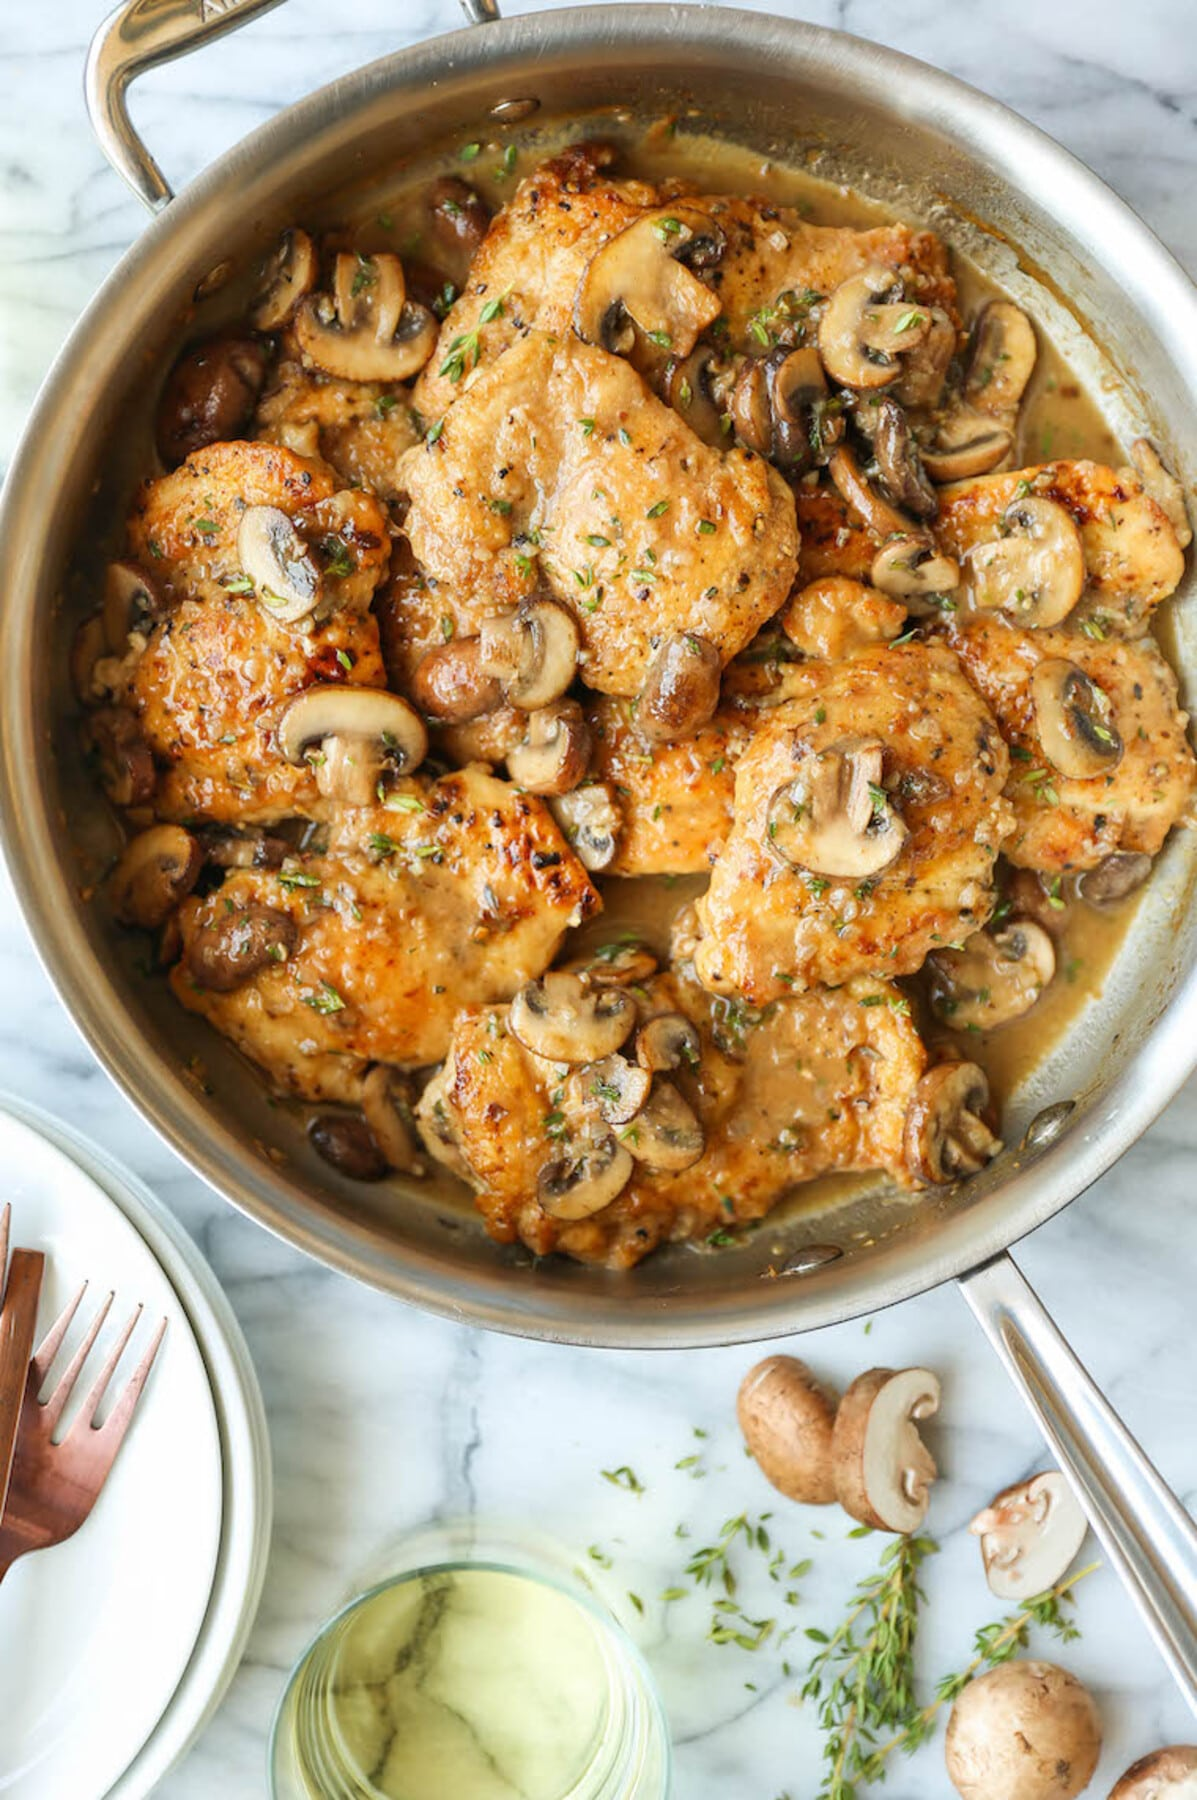 Chicken with mushrooms in skillet